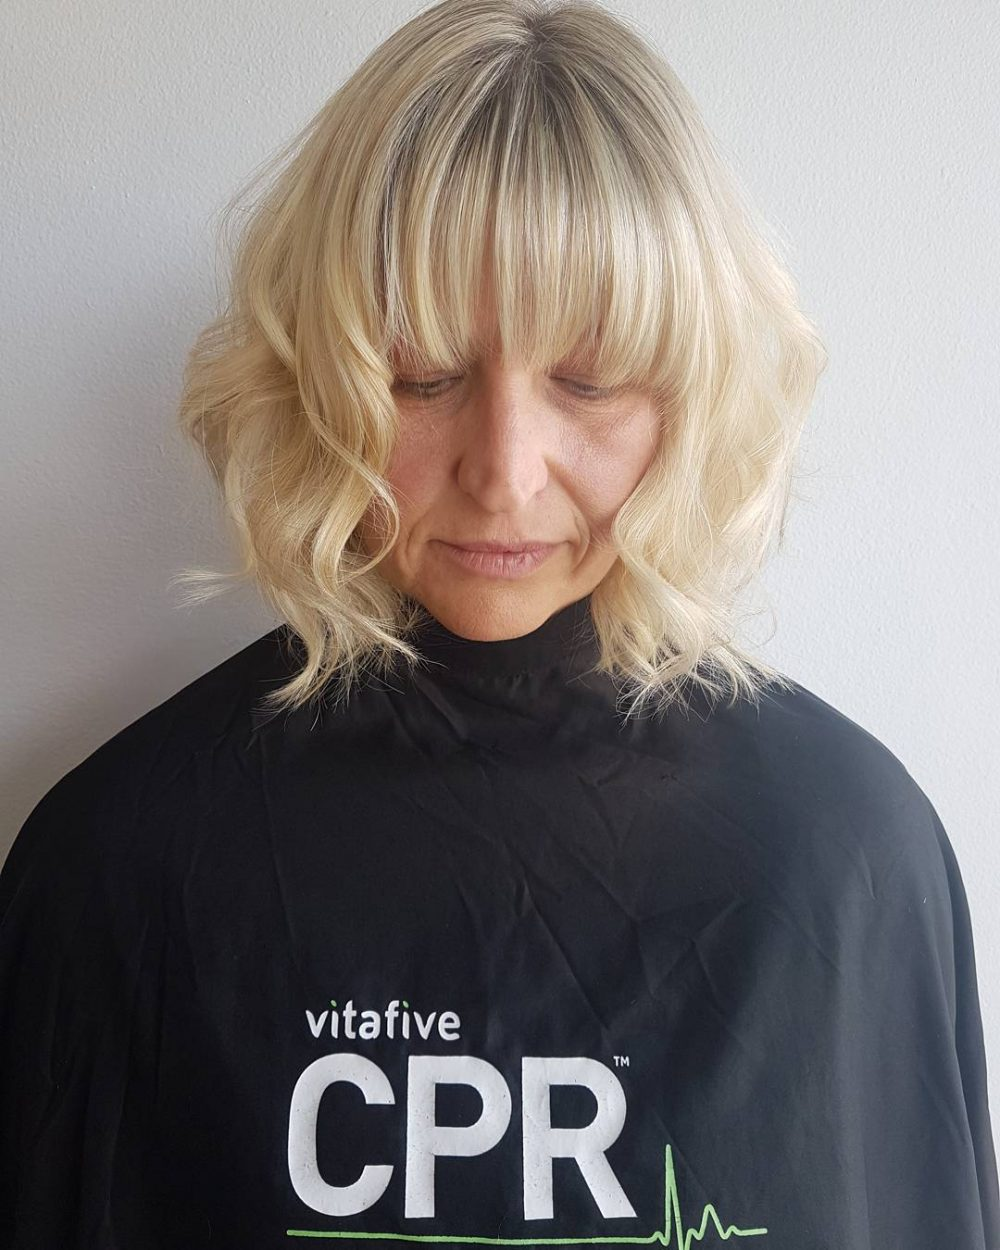 Effortless Bob with Bangs and Blonde Hair